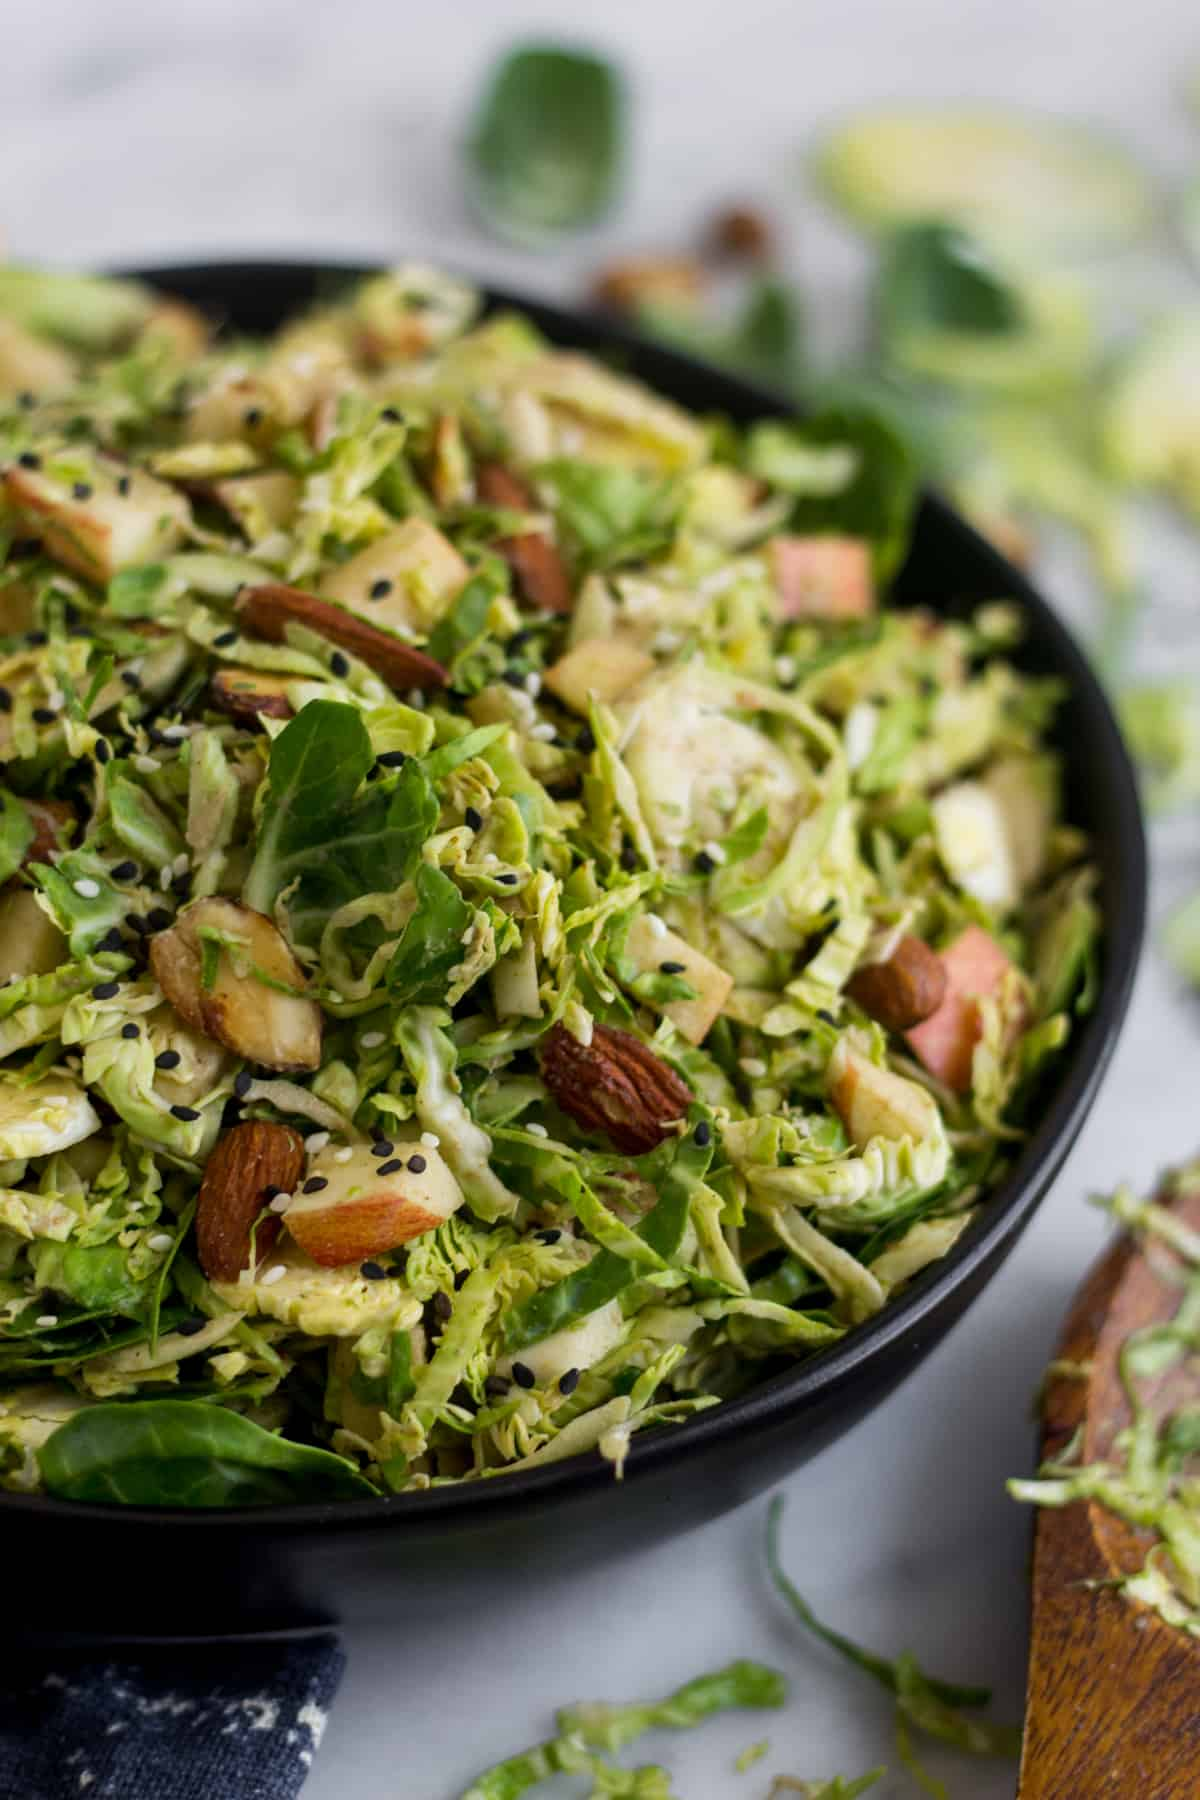 Close up of a black bowl with apple & shaved brussels sprouts salad with a wooden salad tong next to it